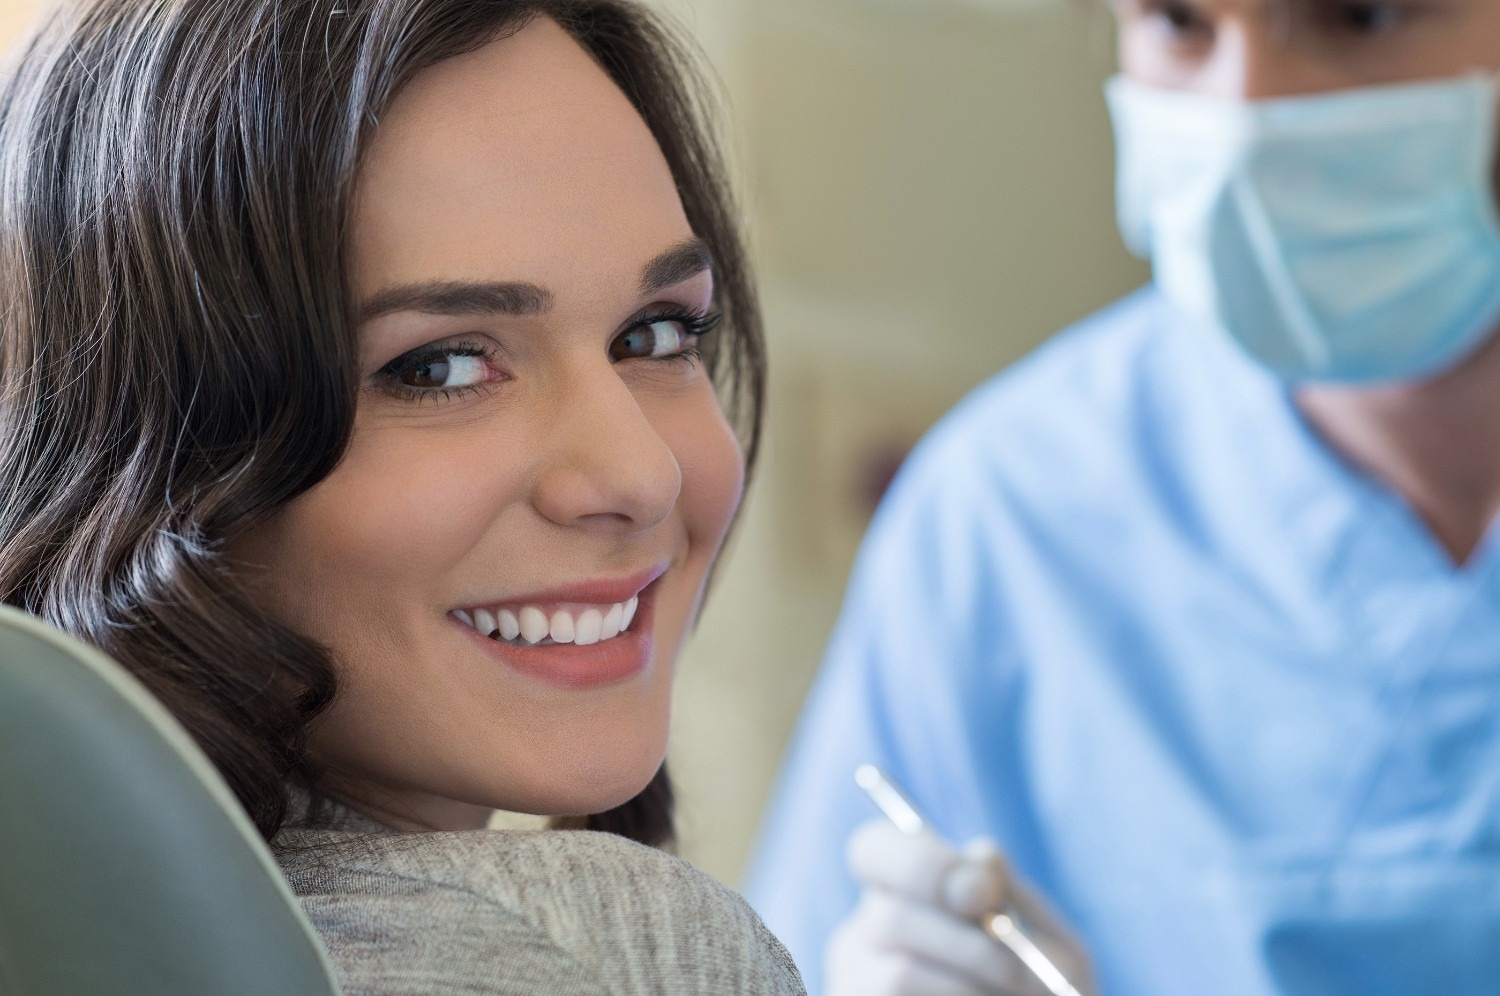 Young woman at Dental appointment